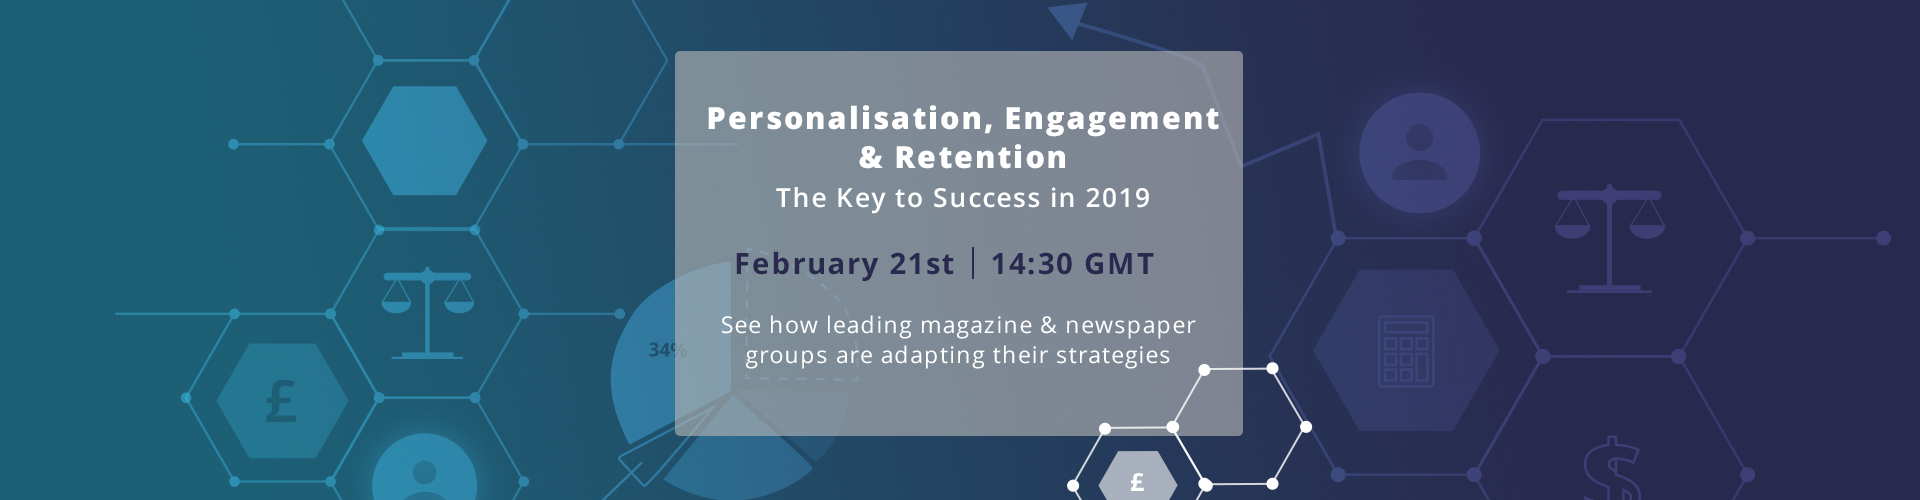 Webinar: Personalisation, Engagement & Retention – The Key to Success in 2019